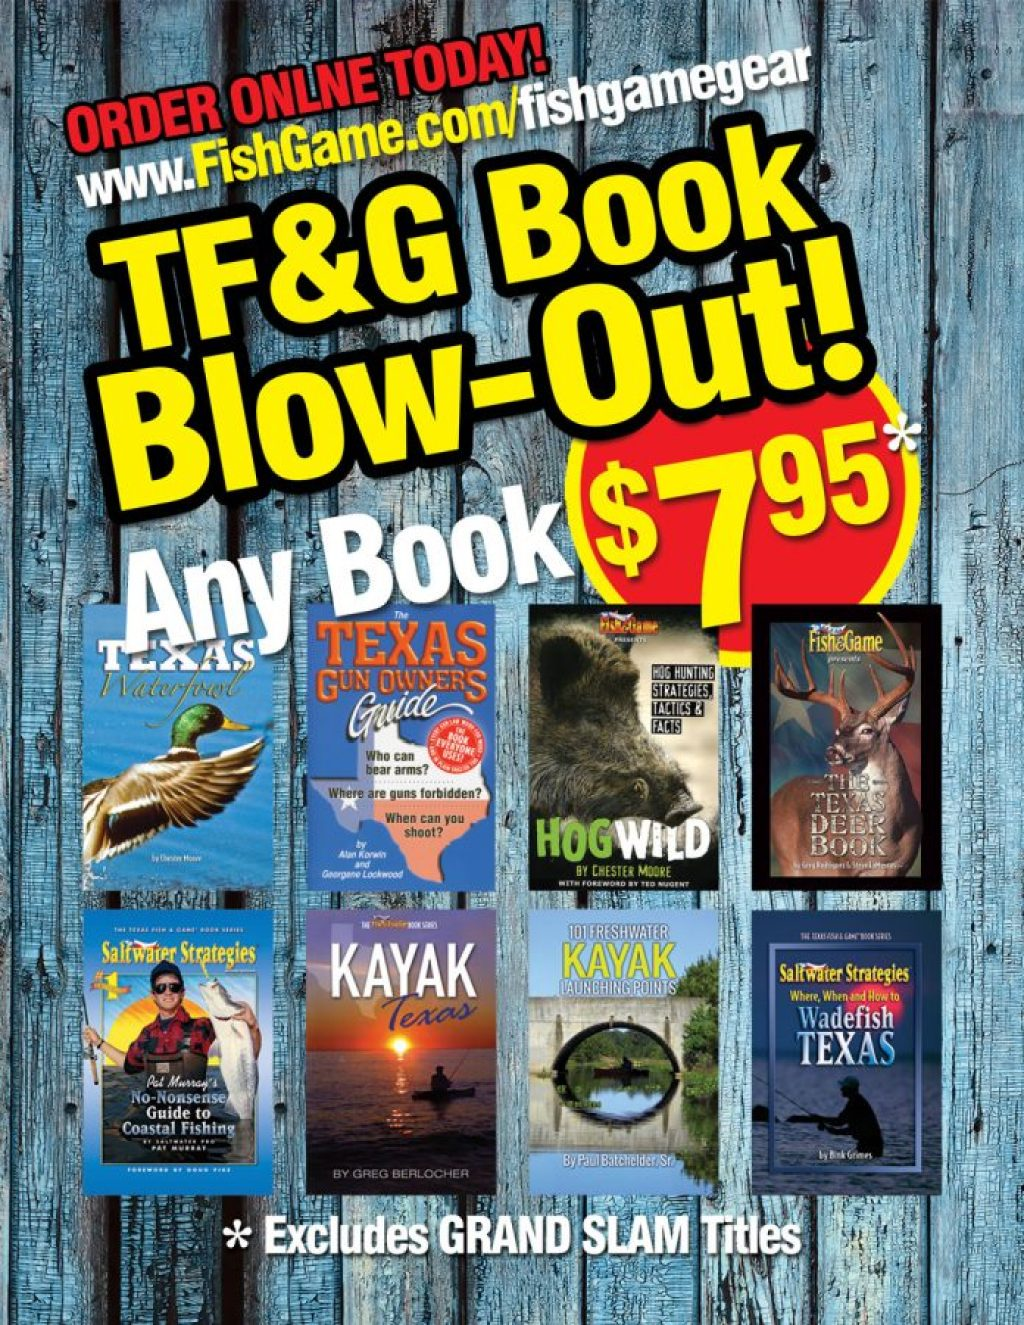 Texas Fish and Game Gear Books